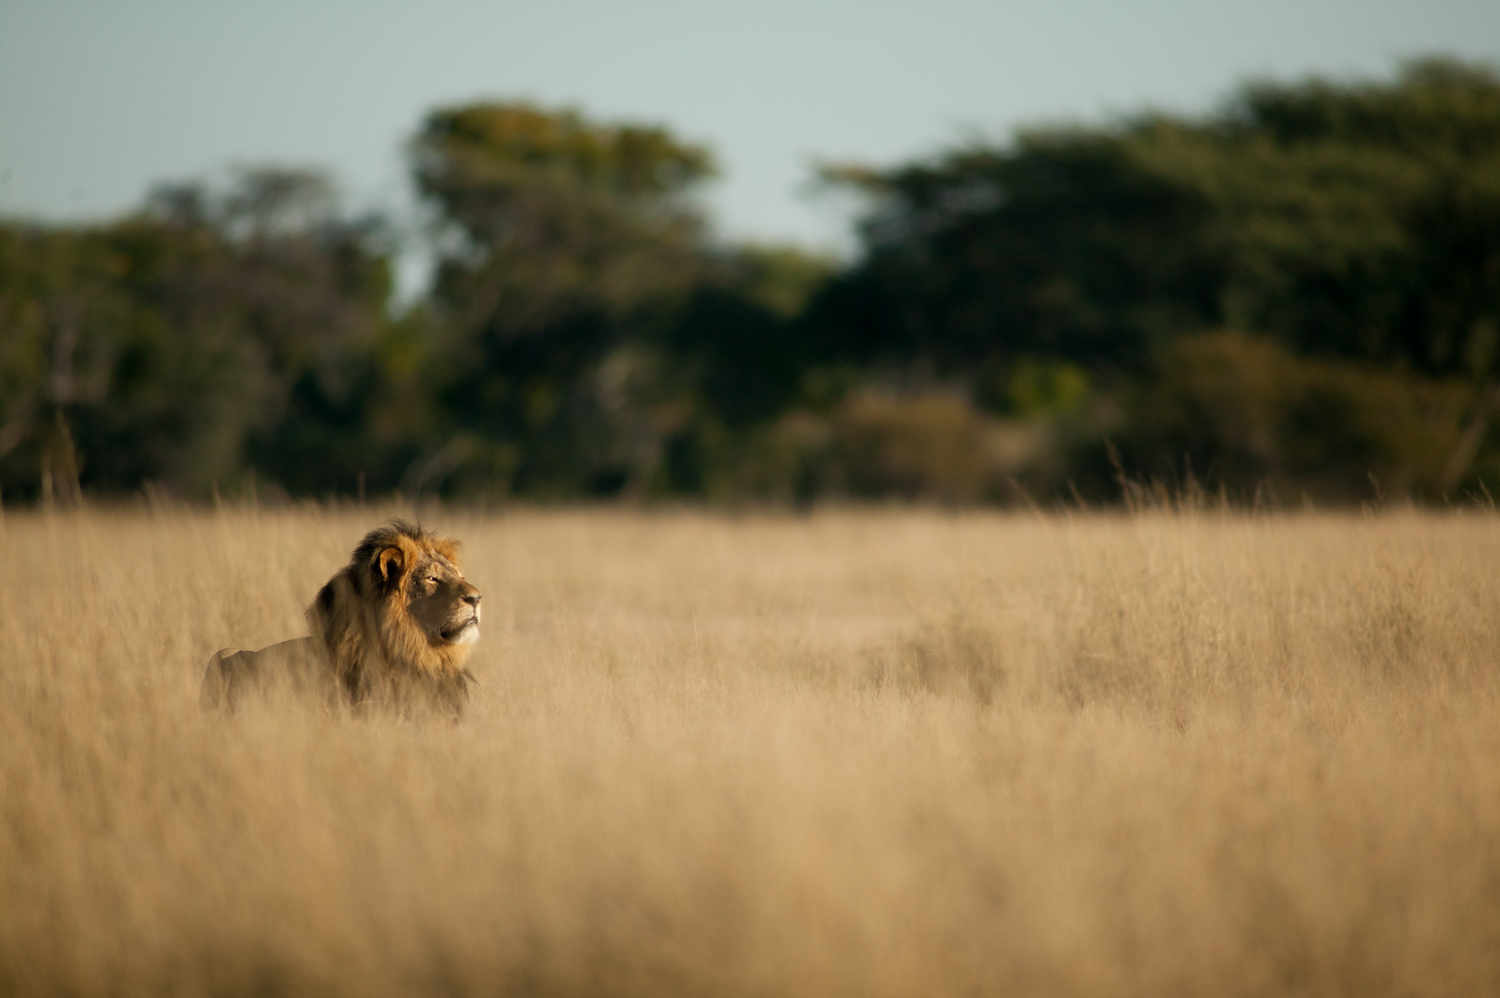 Image above: ©Brent Stapelkamp, Cecil taking the air: This image was taken on the last morning that Brent ever saw Cecil. He and Jericho were interested in something on the other side of the railway line. May 27, 2015 / Courtesy of Anastasia Photo